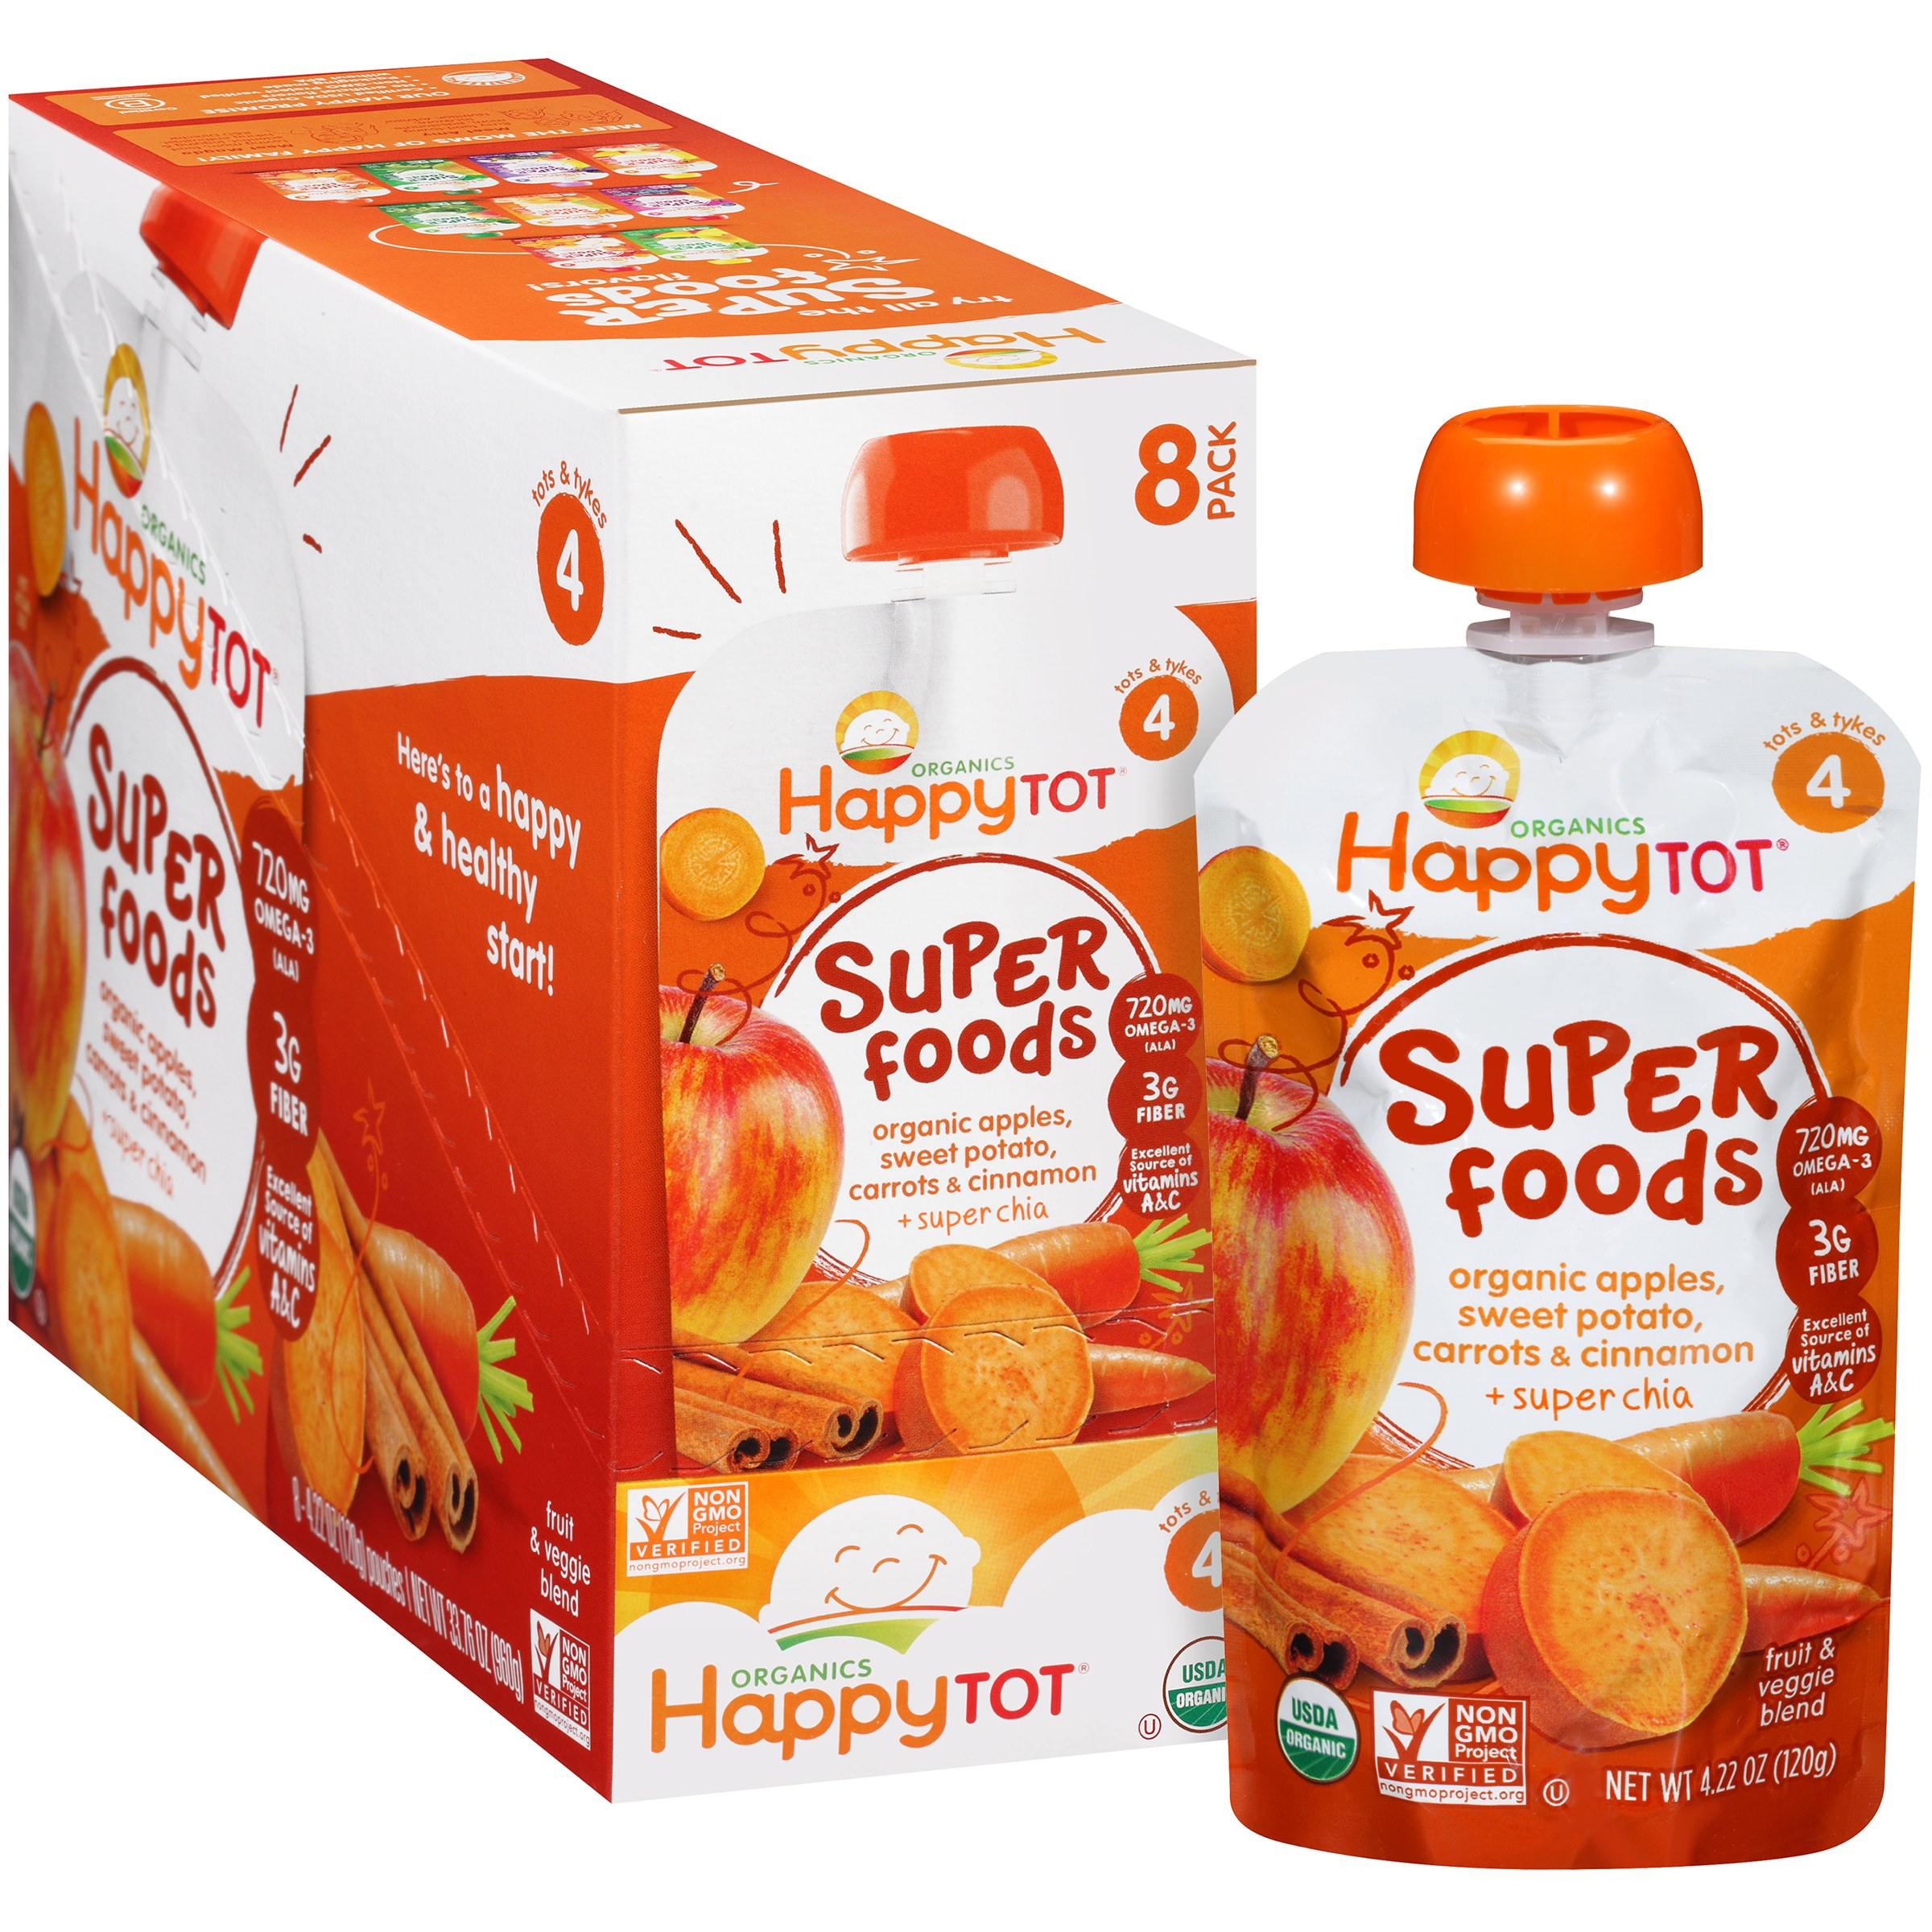 Happy Tot Organics Super Foods Apples, Sweet Potato, Carrots & Cinnamon + Super Chia Stage 2 Baby Food, 4.22 oz, 8 count